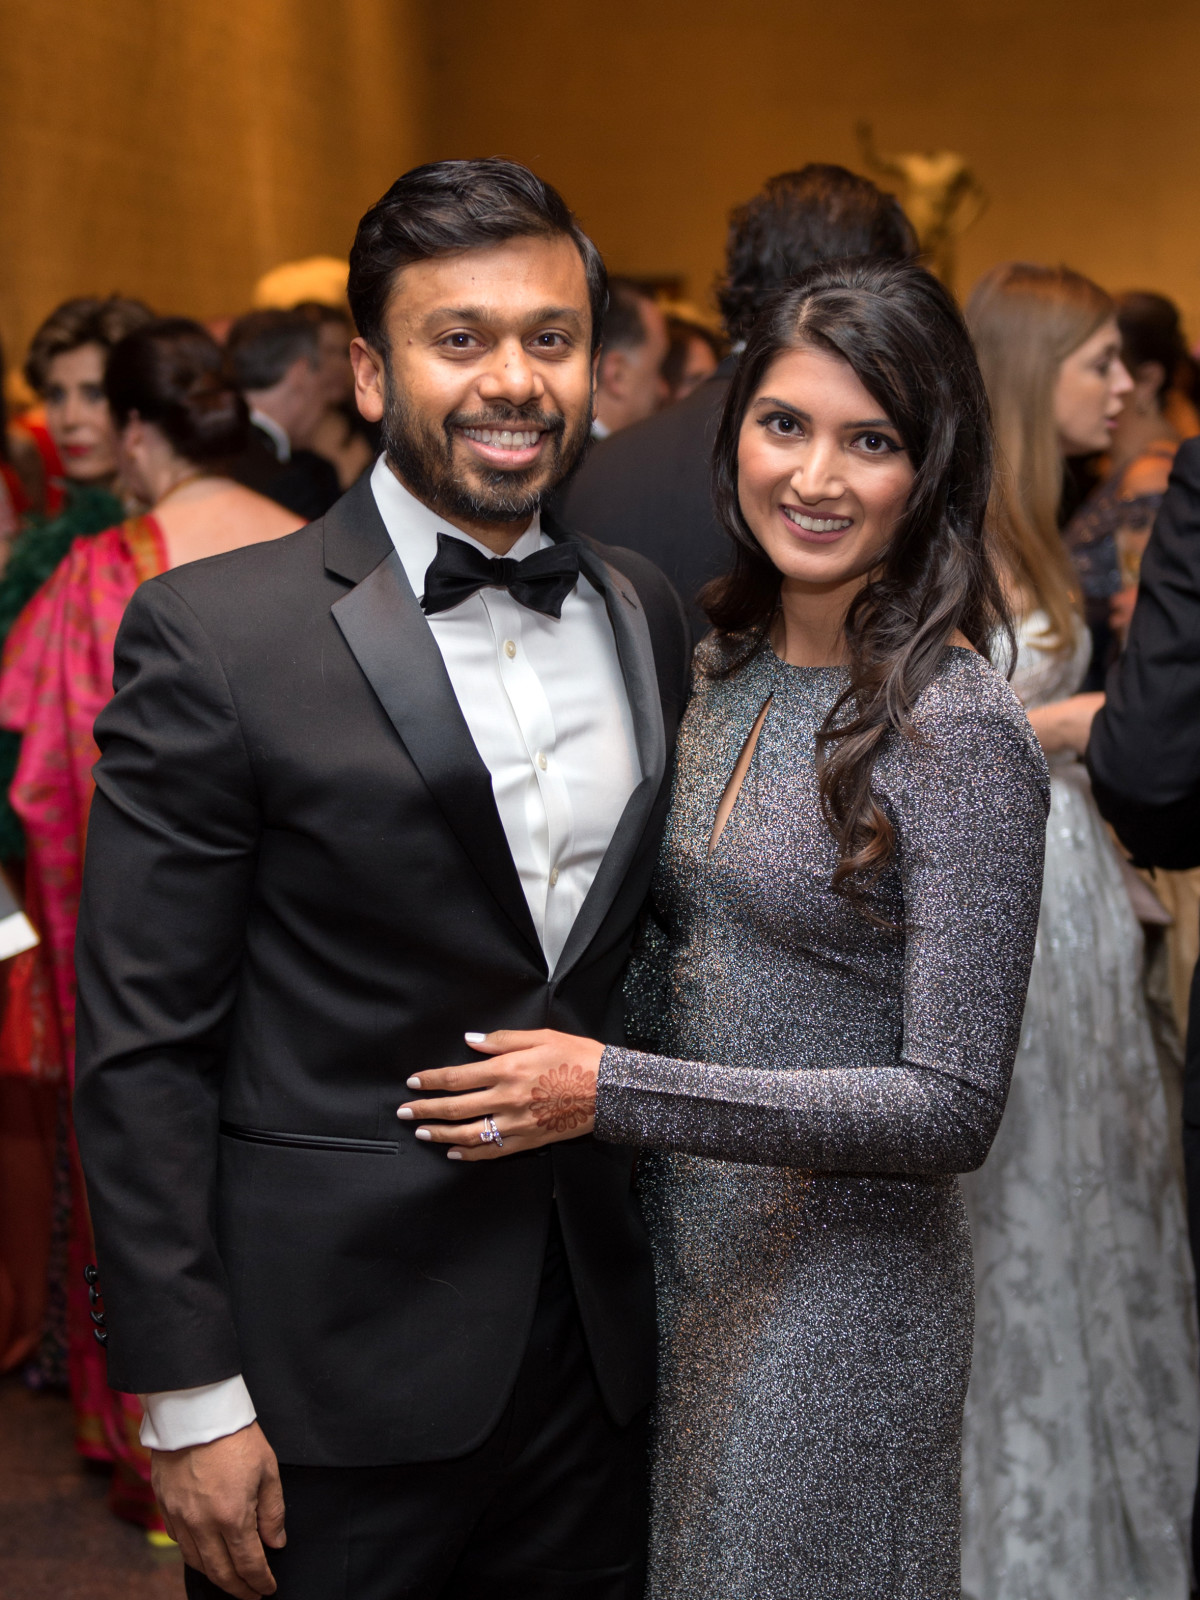 Houston, MFAH Art of the Islamic Worlds Gala, November 2017, Osama Ahmed, Sophia Ahmed